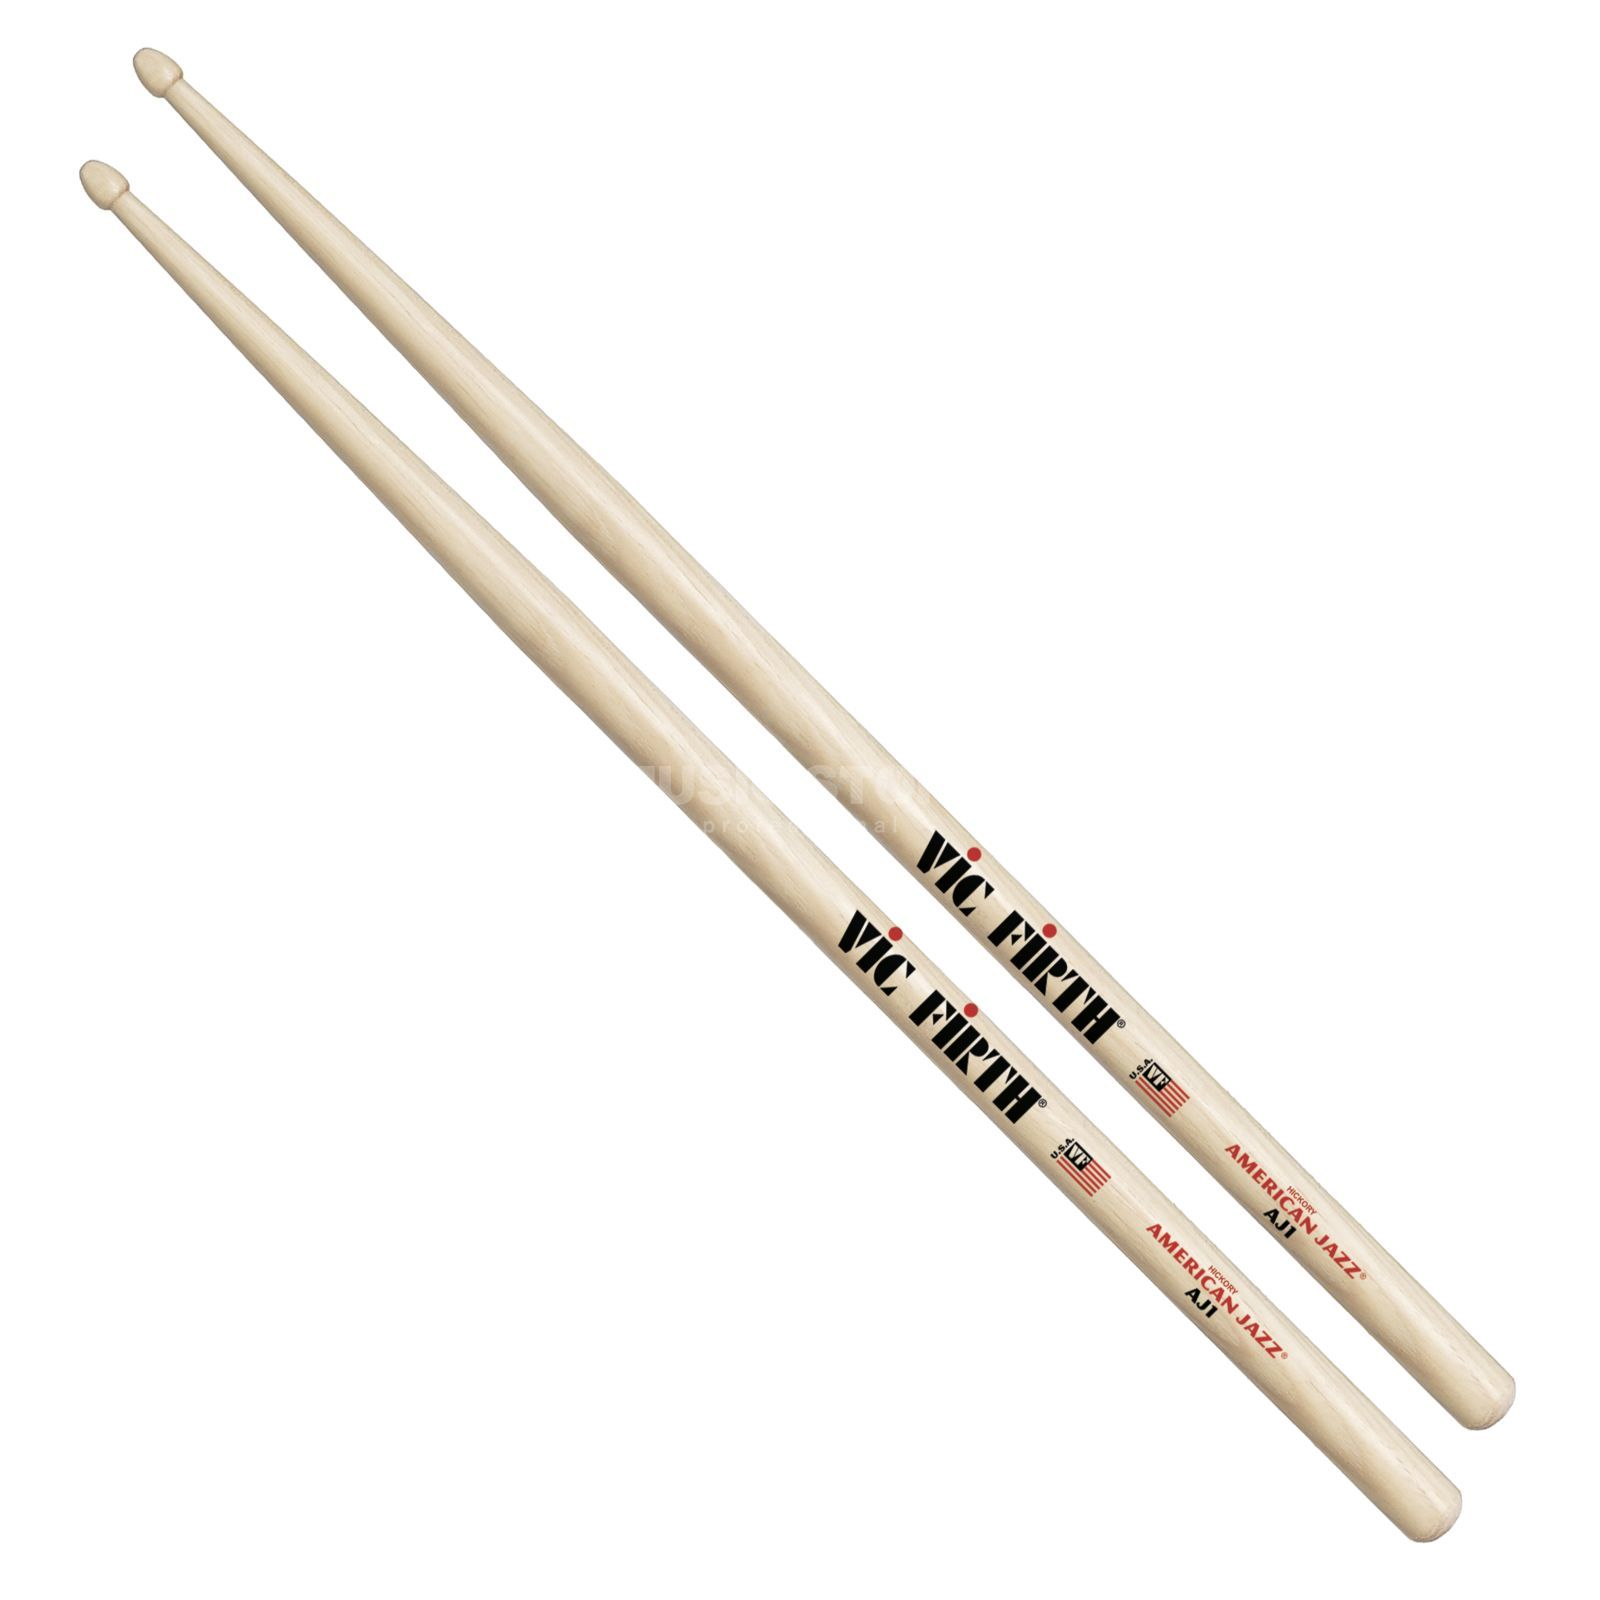 Vic-Firth AJ1 Sticks, American Jazz, Wood Tip Zdjęcie produktu